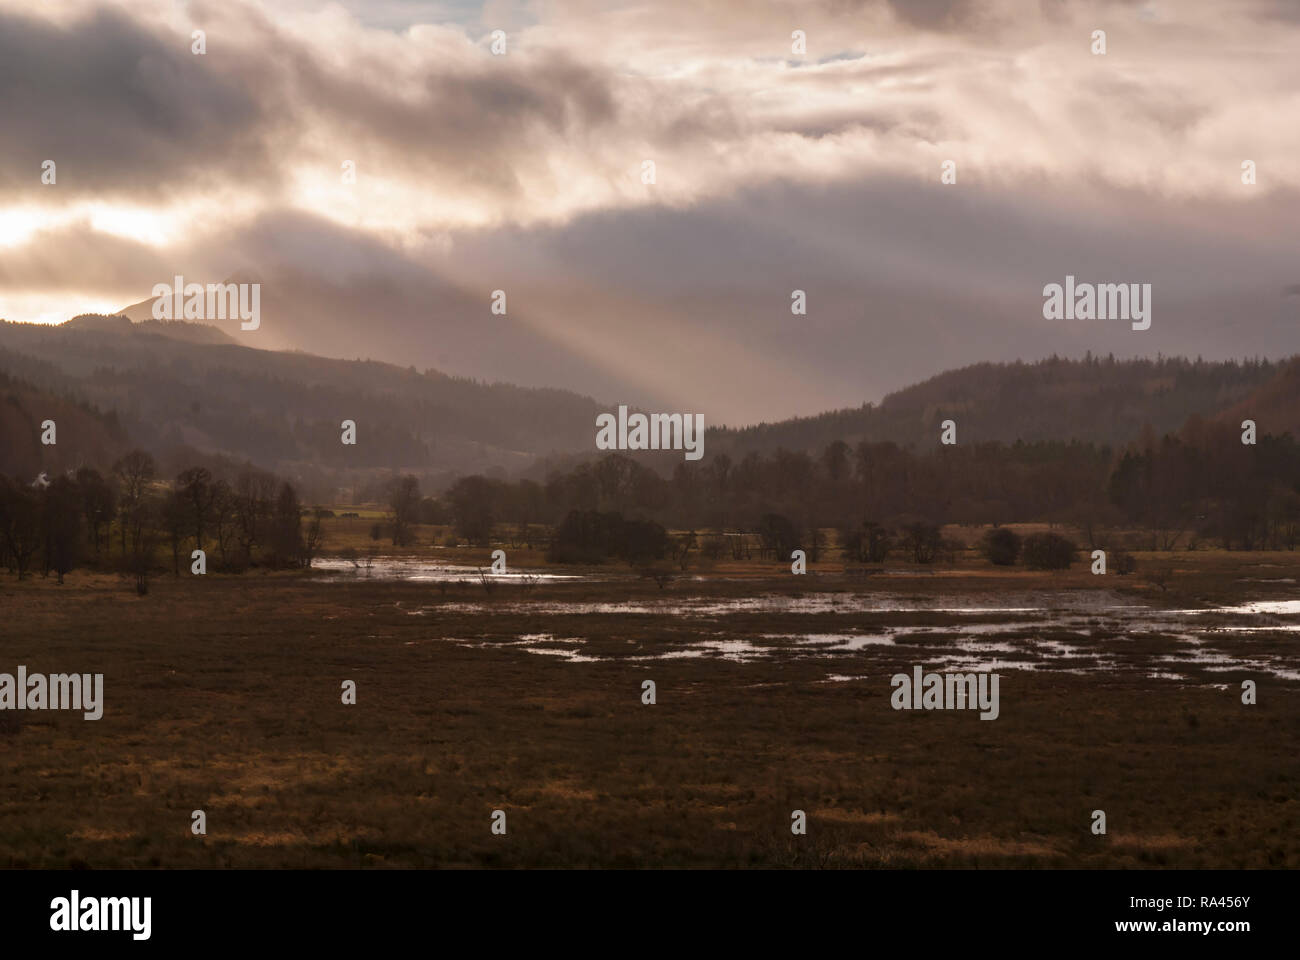 A miserable day overlooking the River Balvag and flooded fields near Balquhidder in Stirling, Scotland. 22 December 2008 Stock Photo